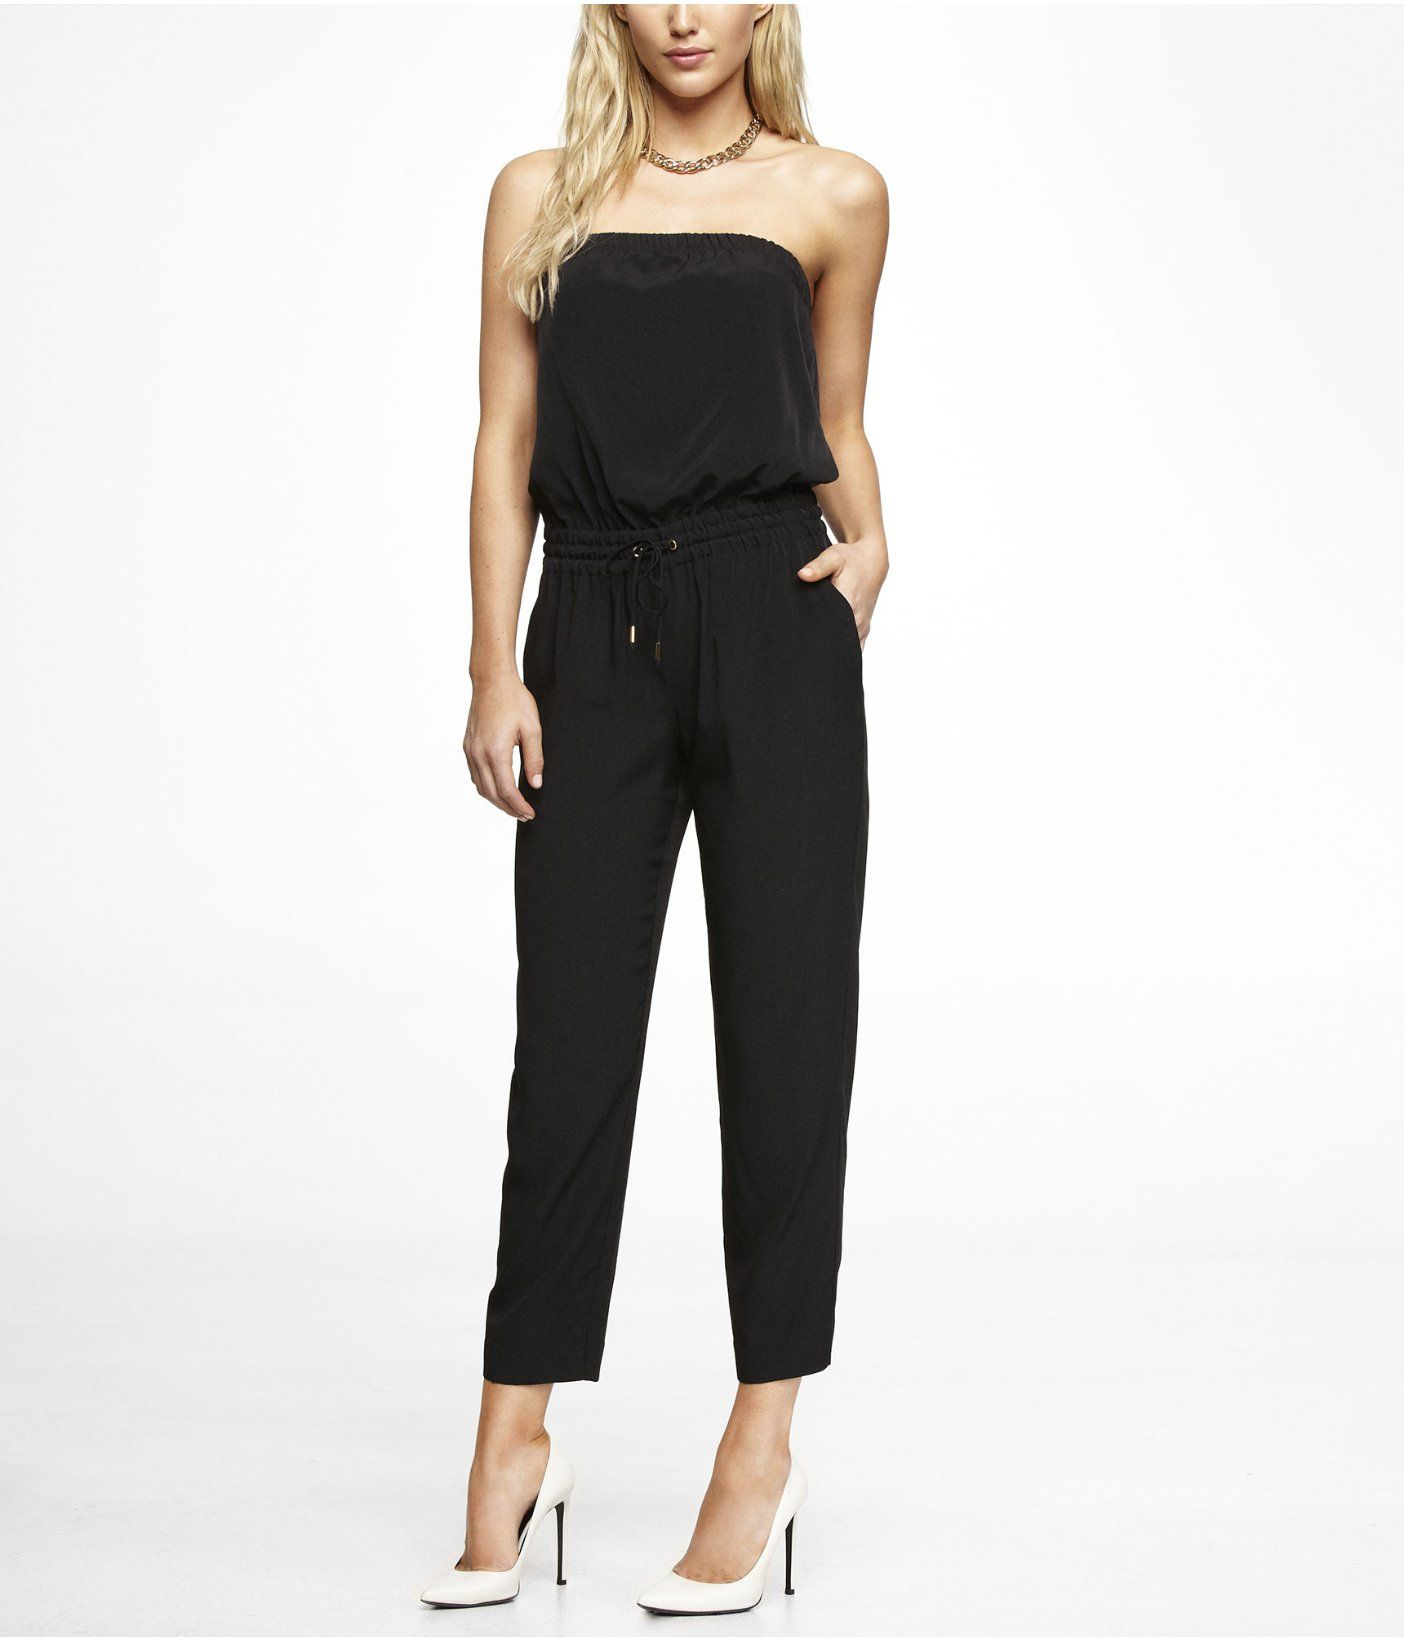 a94470a15862 View All Dresses. STRAPLESS TRACK PANT JUMPSUIT